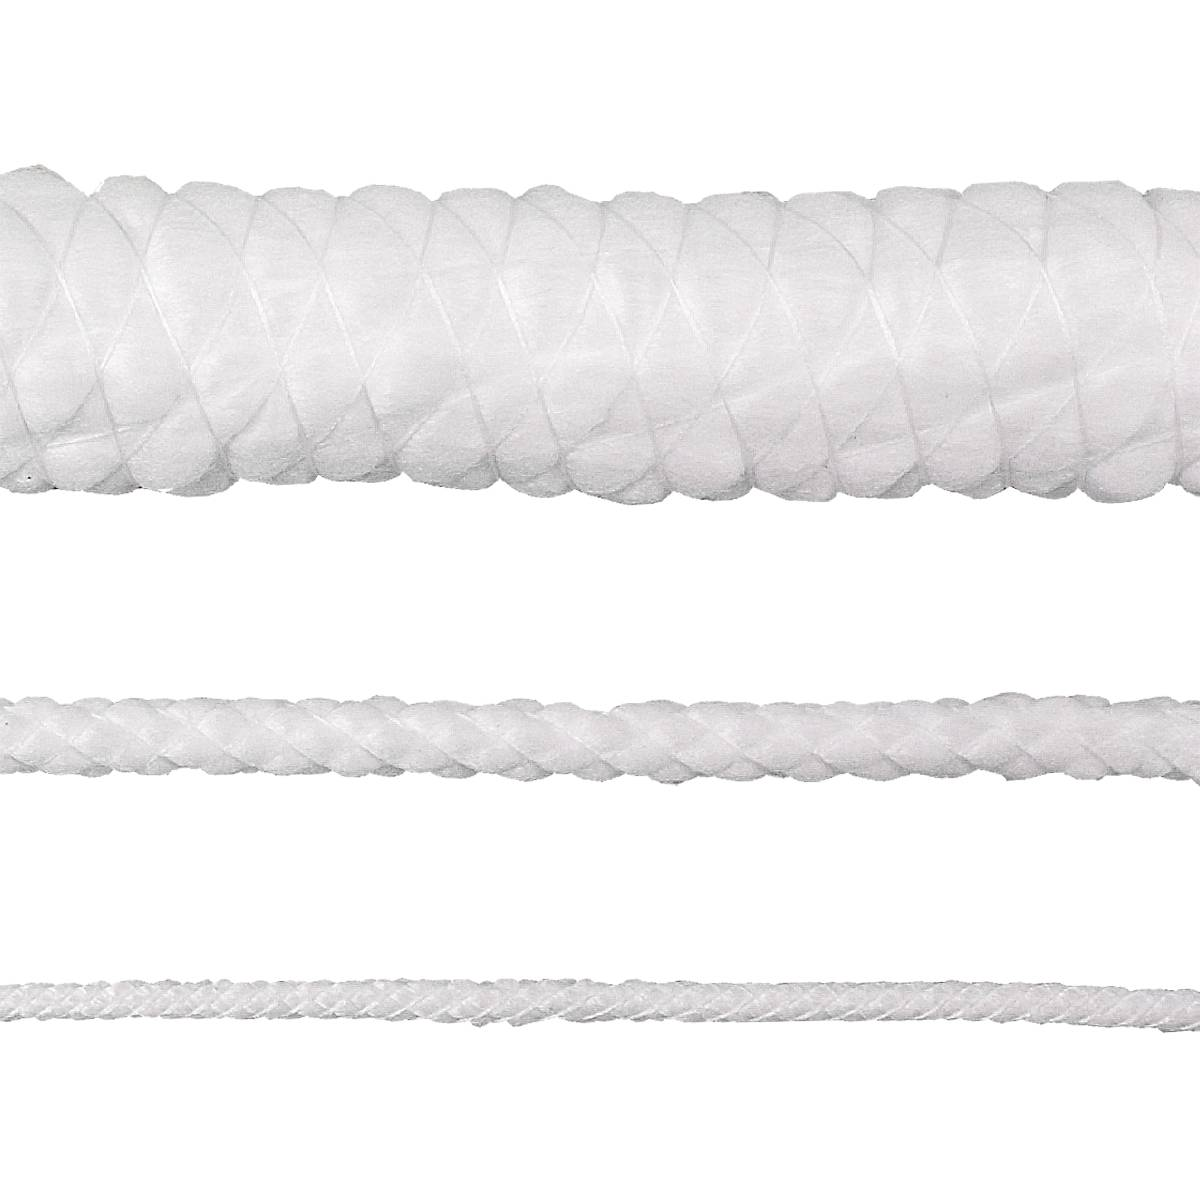 Polyester Welt Cord R Tex Welting Cord For Upholstery Workrooms